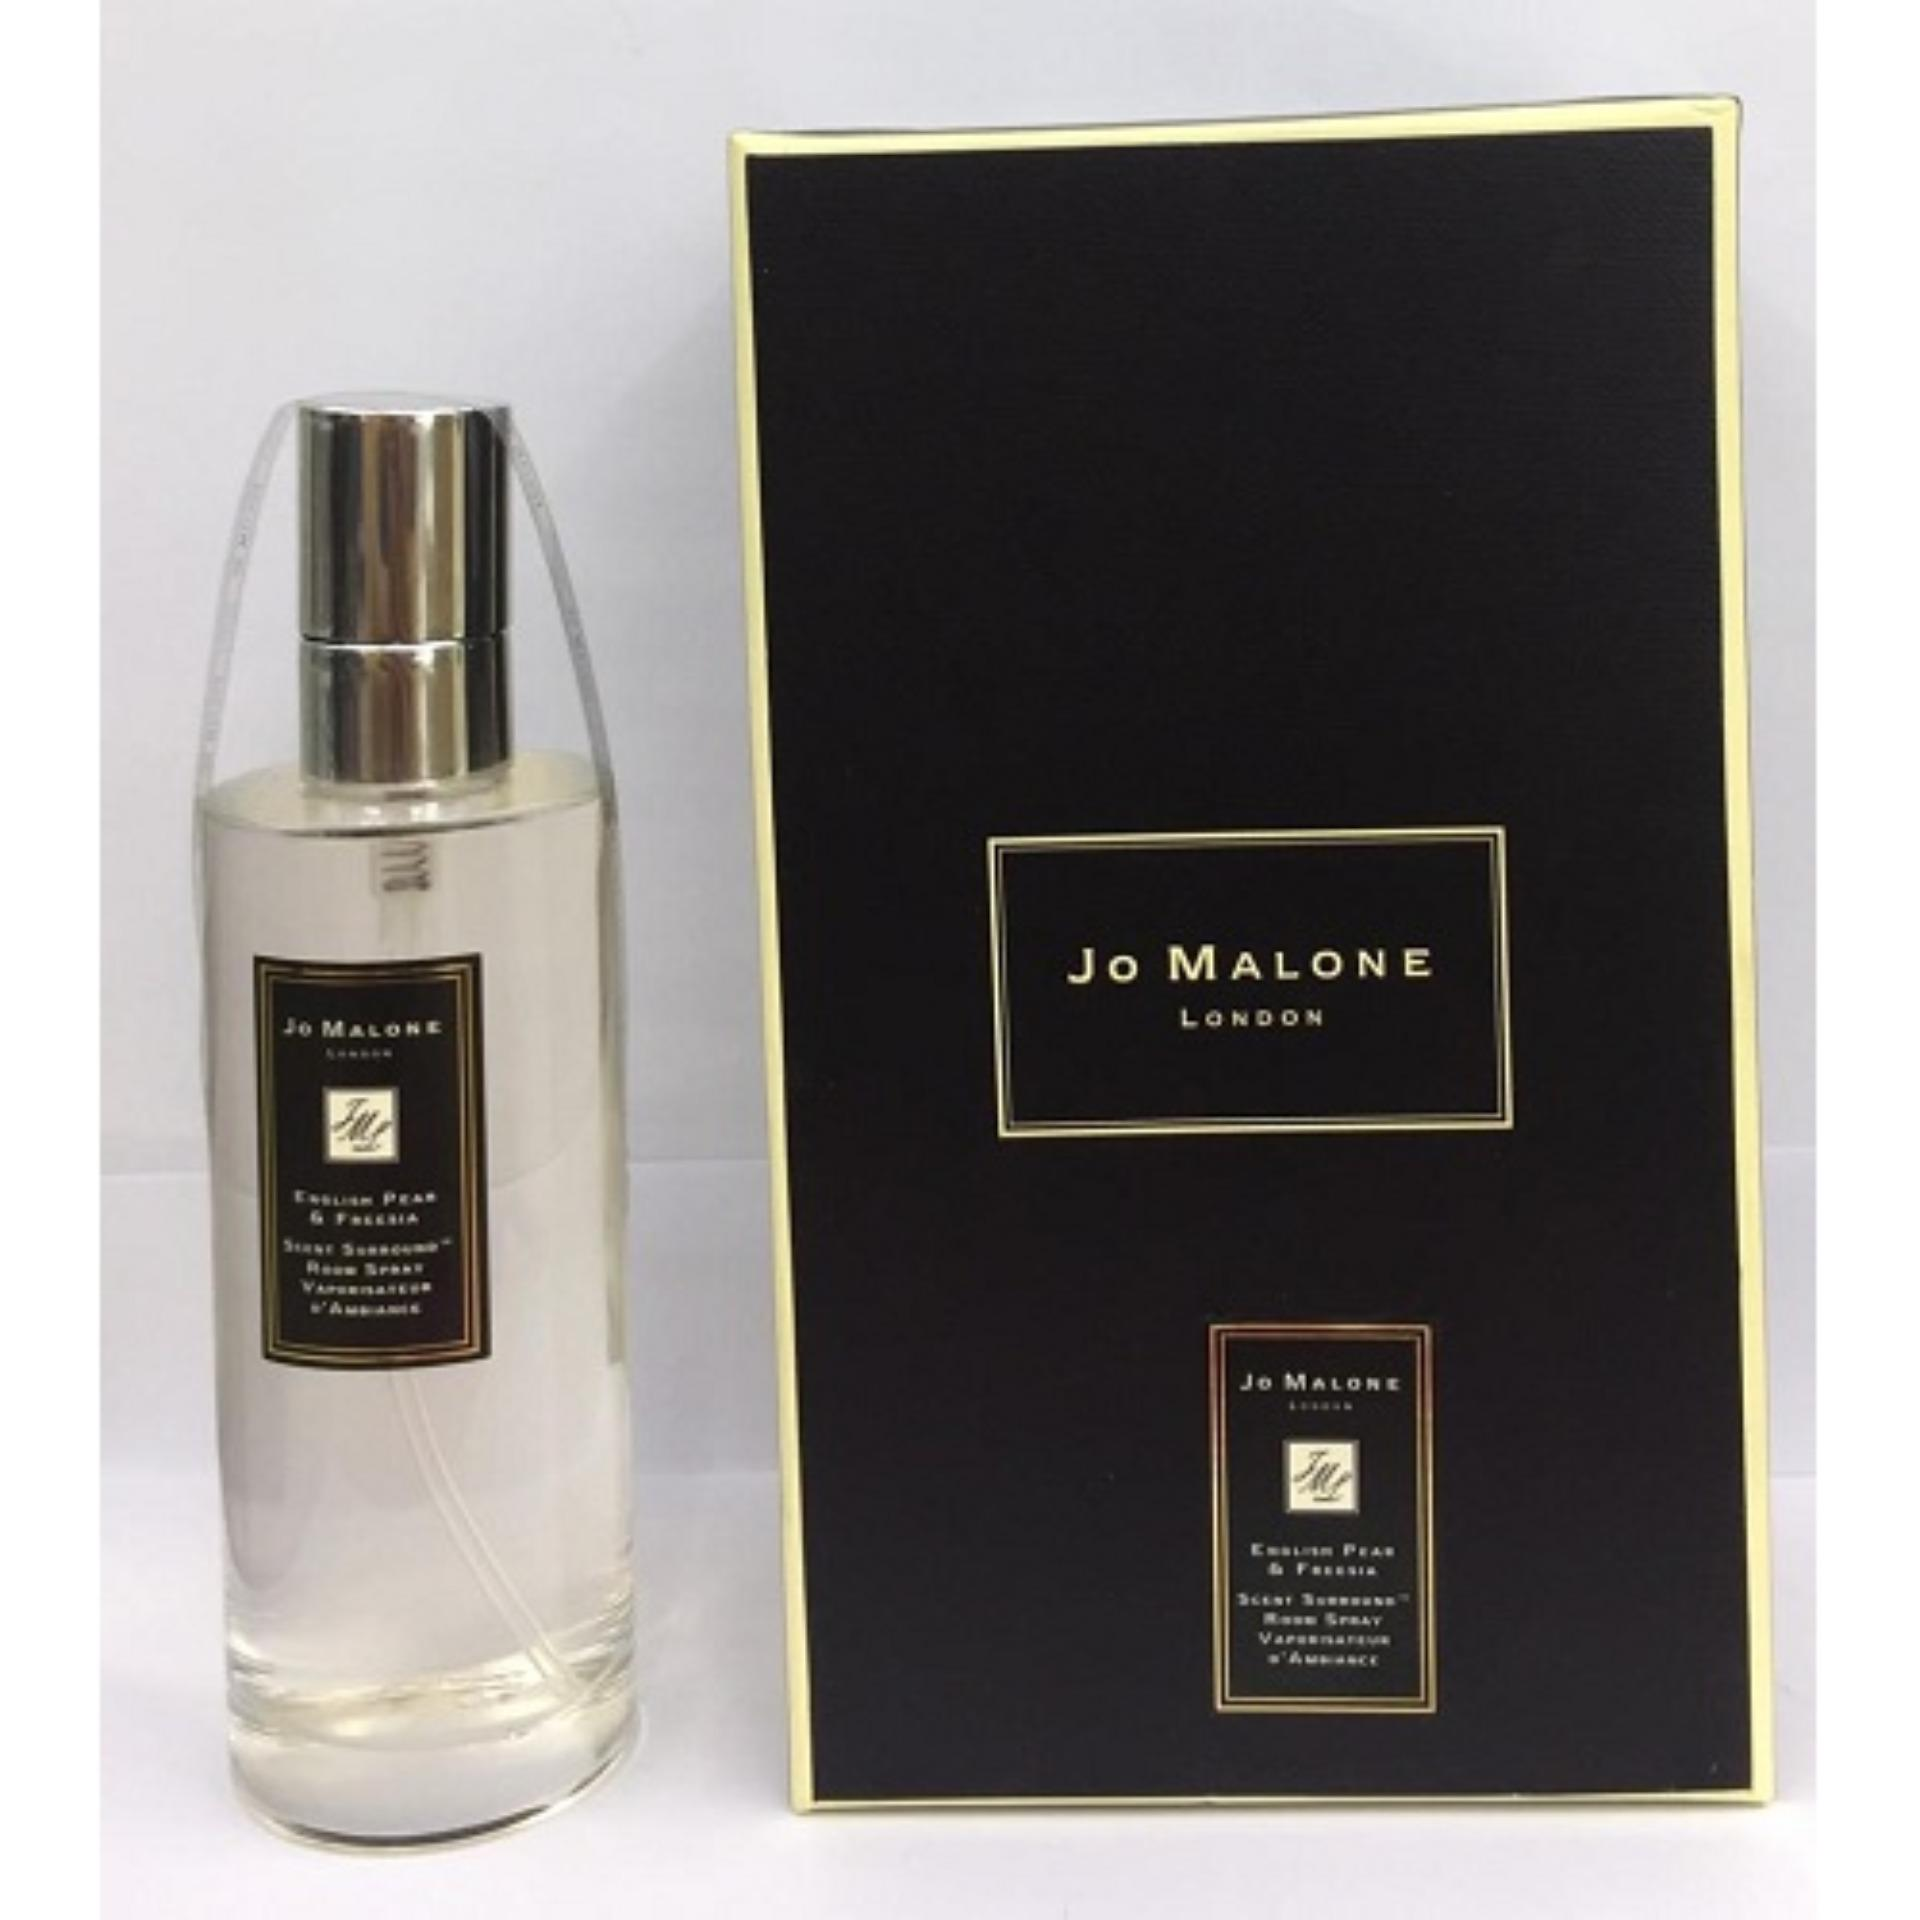 Jo Malone London English Pear & Freesia Scent Surround™ Room Spray 175ml